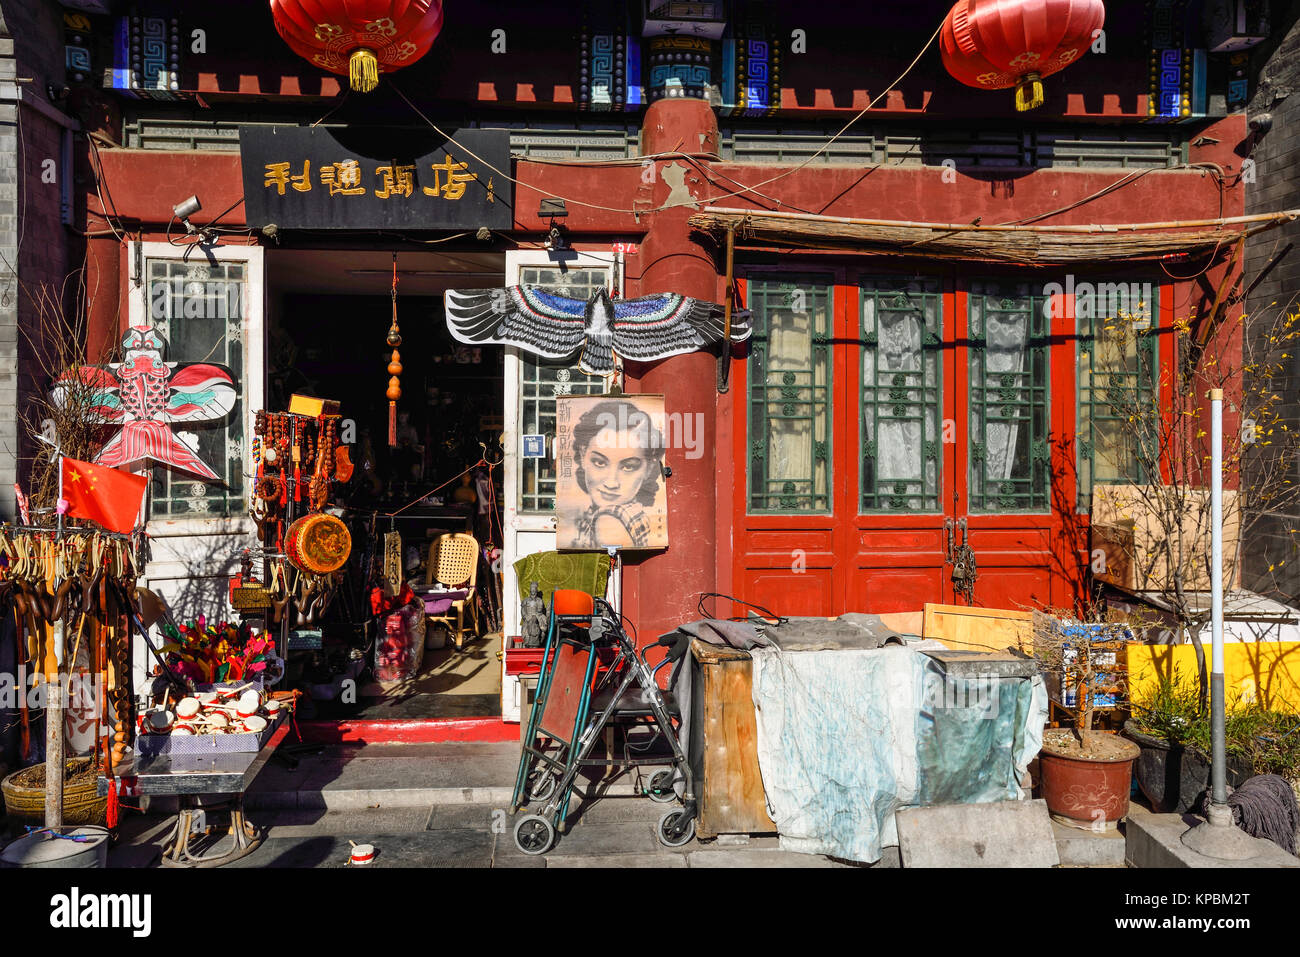 Beijing,China - Nov 14,2017:Beijing houhai street in winter,Houhai is the largest of the three lakes of Shichahai, - Stock Image